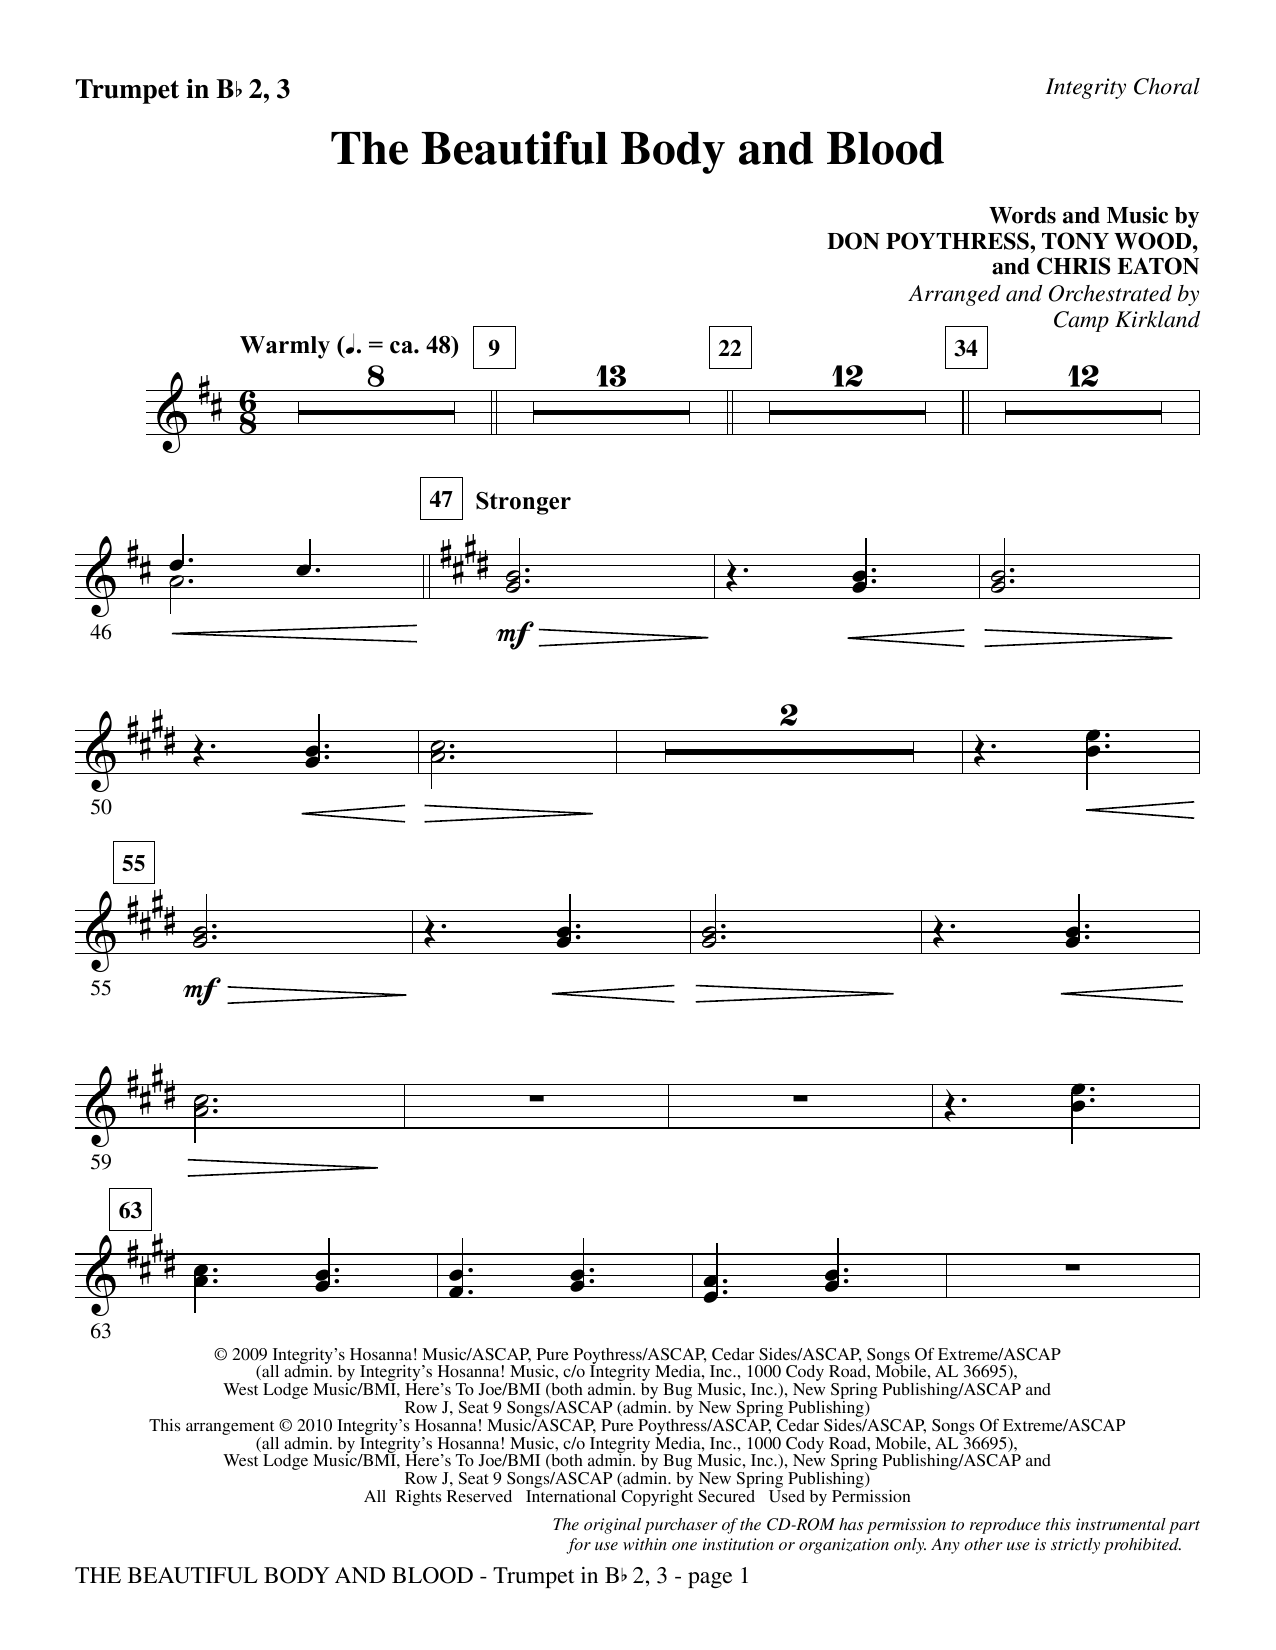 The Beautiful Body And Blood - Trumpet 2 & 3 sheet music